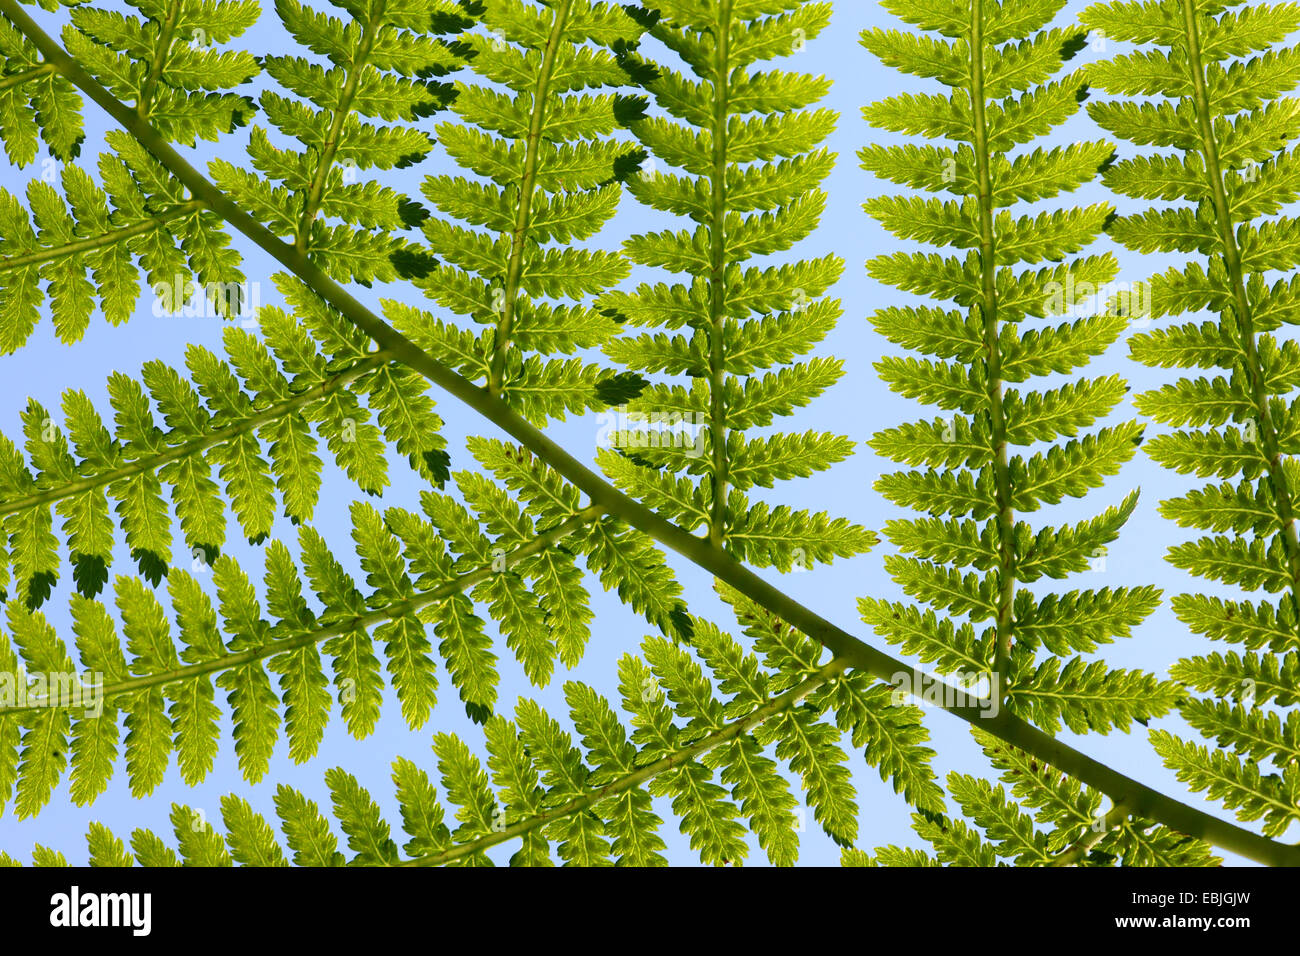 leaflets of a fern frond in backlight, Switzerland - Stock Image